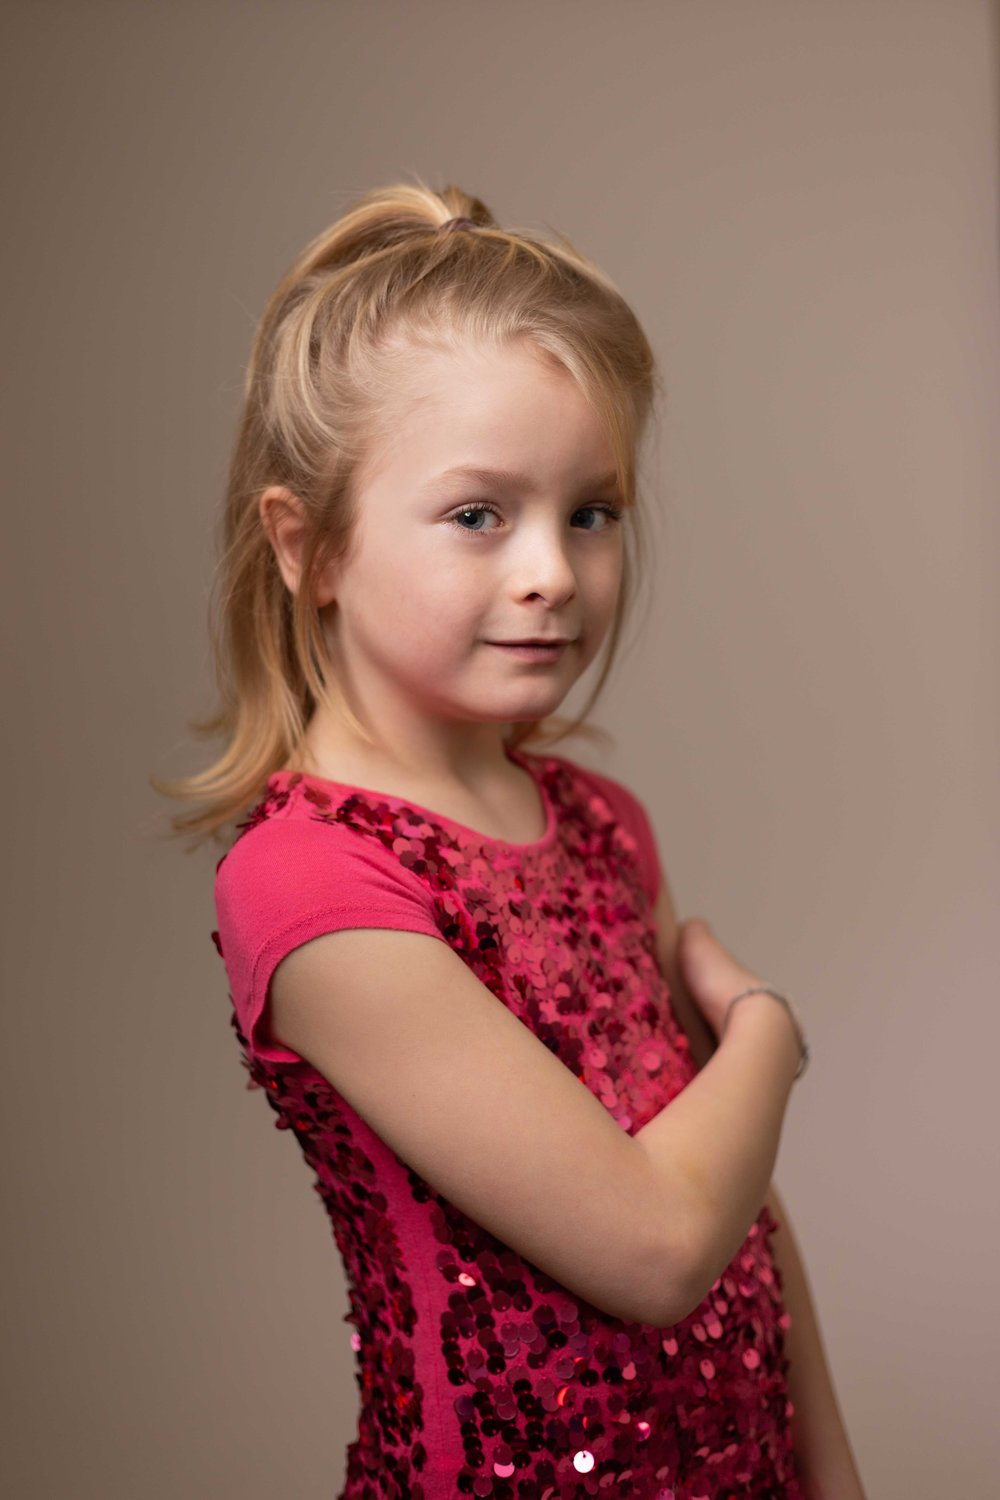 LEA-COOPER-PHOTOGRAPHY-CHILD-PHOTOGRAPHY-WILLENHALL-CHILDREN-PHOTOGRAPHER-WOLVERHAMPTON-DUDLEY-WEDNESBURY-KIDS-PHOTOGRAPHER-SITTER-SESSION-SISTERS-PORTRAIT-PROFESSIONAL--3.JPG